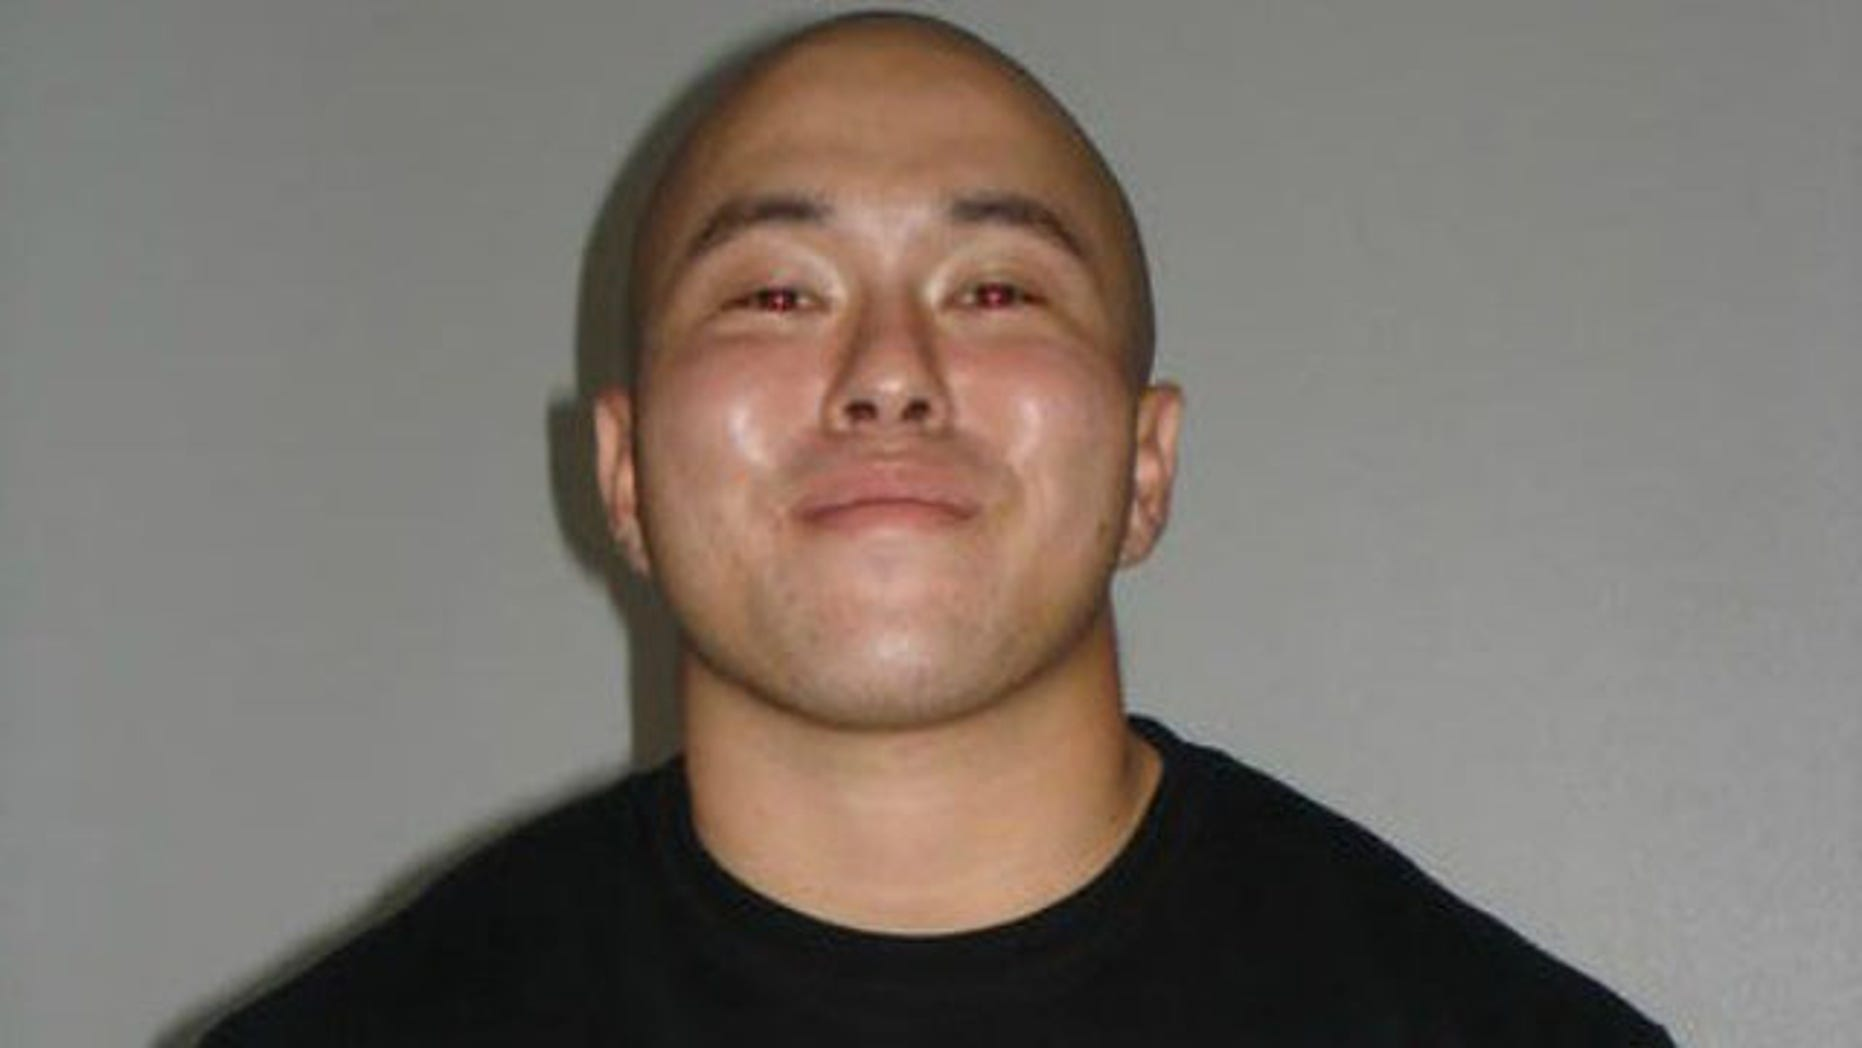 October 14, 2014: This photo shows Michael Tanouye, who was arrested and accused of sexually assaulting a woman in the bathroom of a flight from Hawaii to Japan. (FBI)